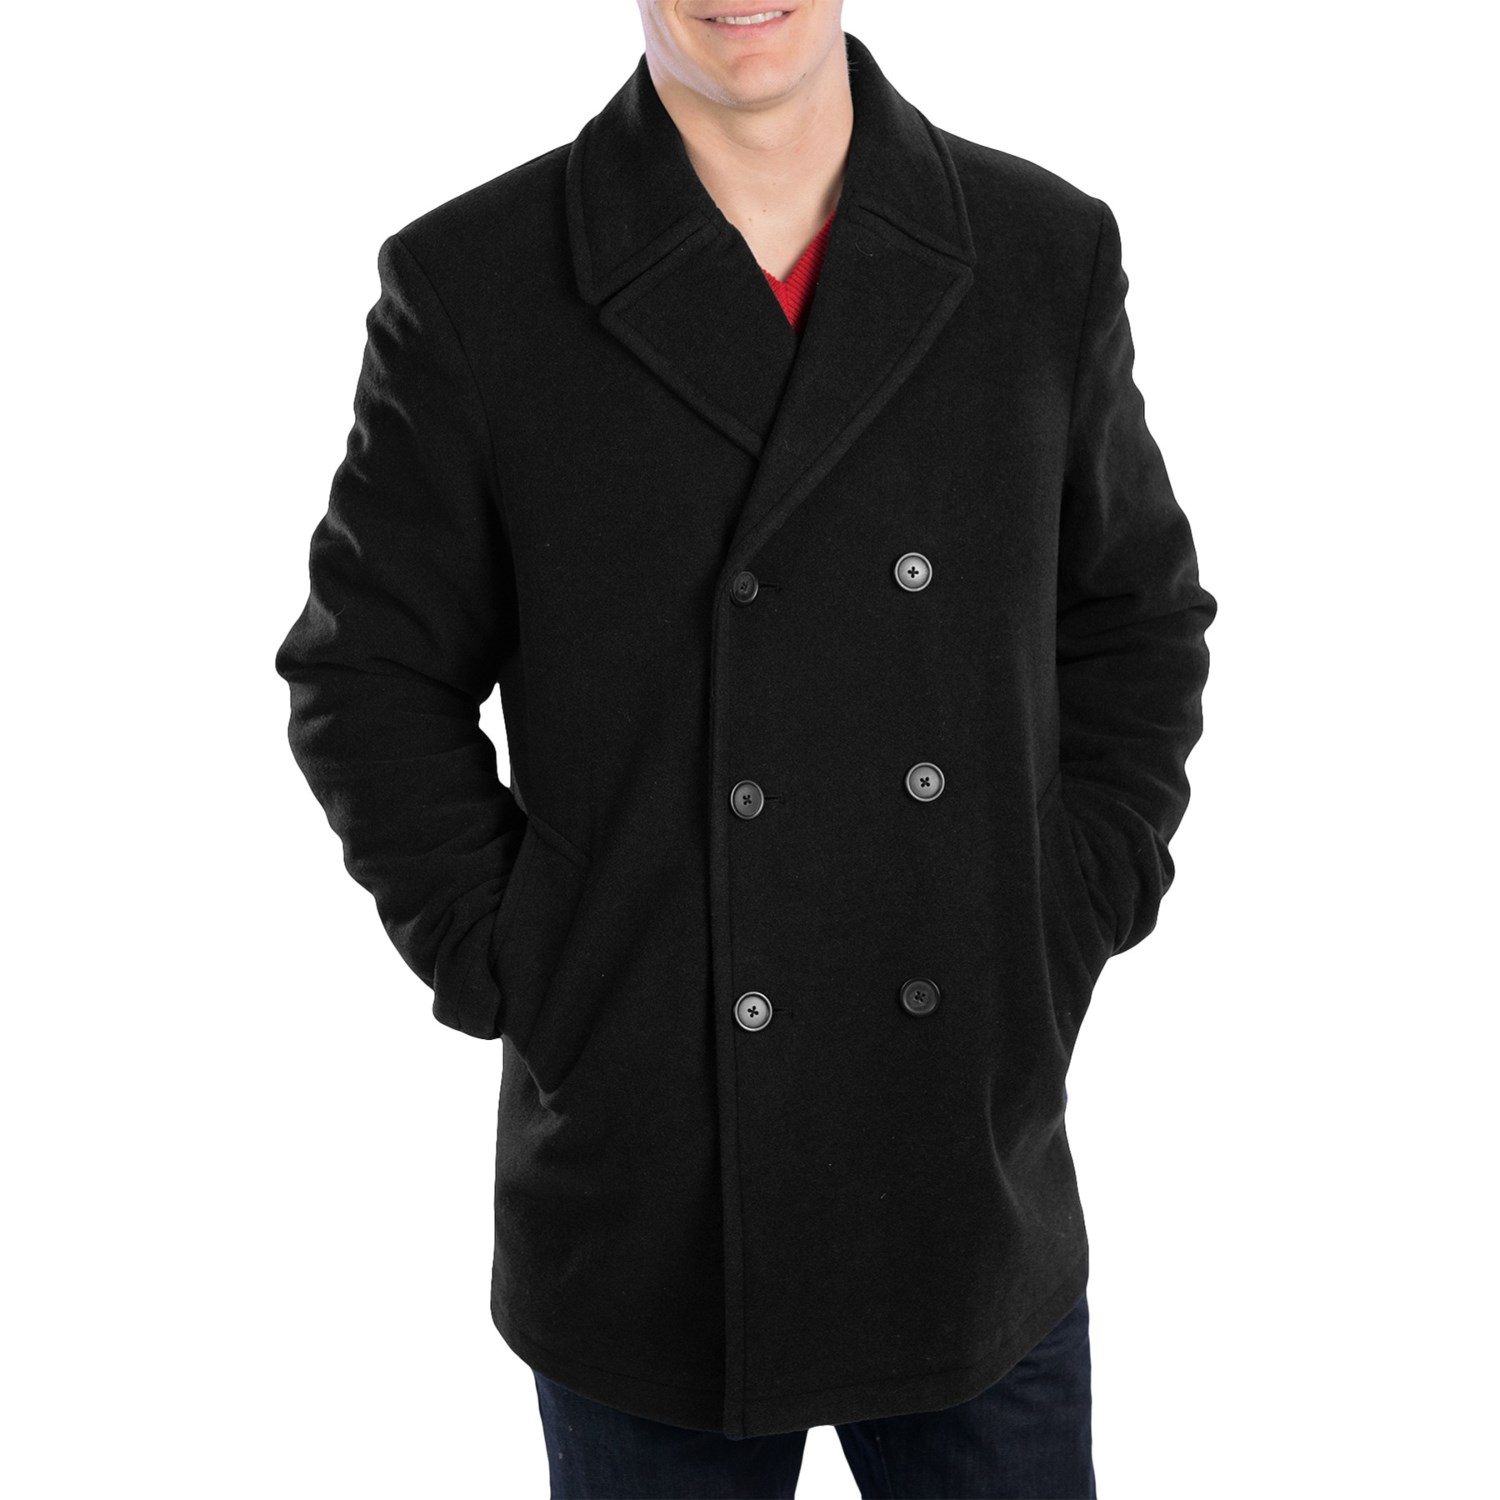 A peacoat is a classic men's coat, taking its cue from a naval jacket. Hovering between casual and business appropriate, typical peacoat colors include black and navy, but it can also be seen in plaid, olive green, and even denim.